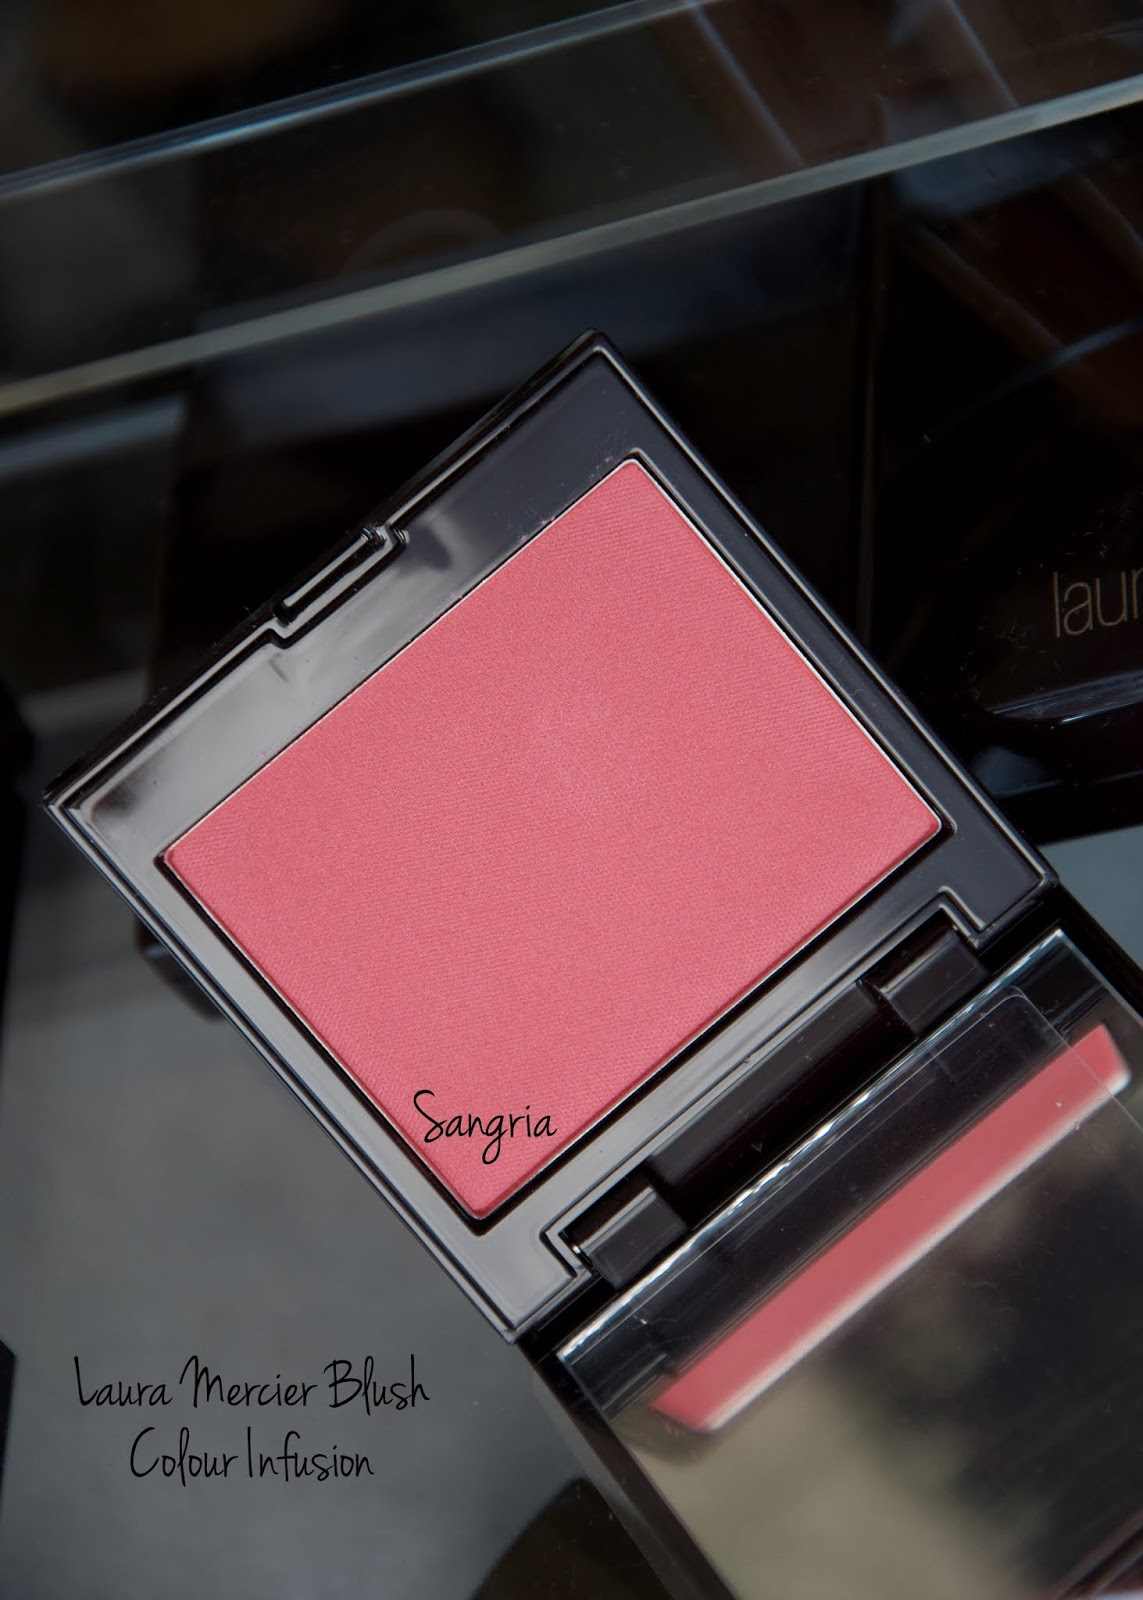 Laura Mercier Blush Color Infusion Sangria